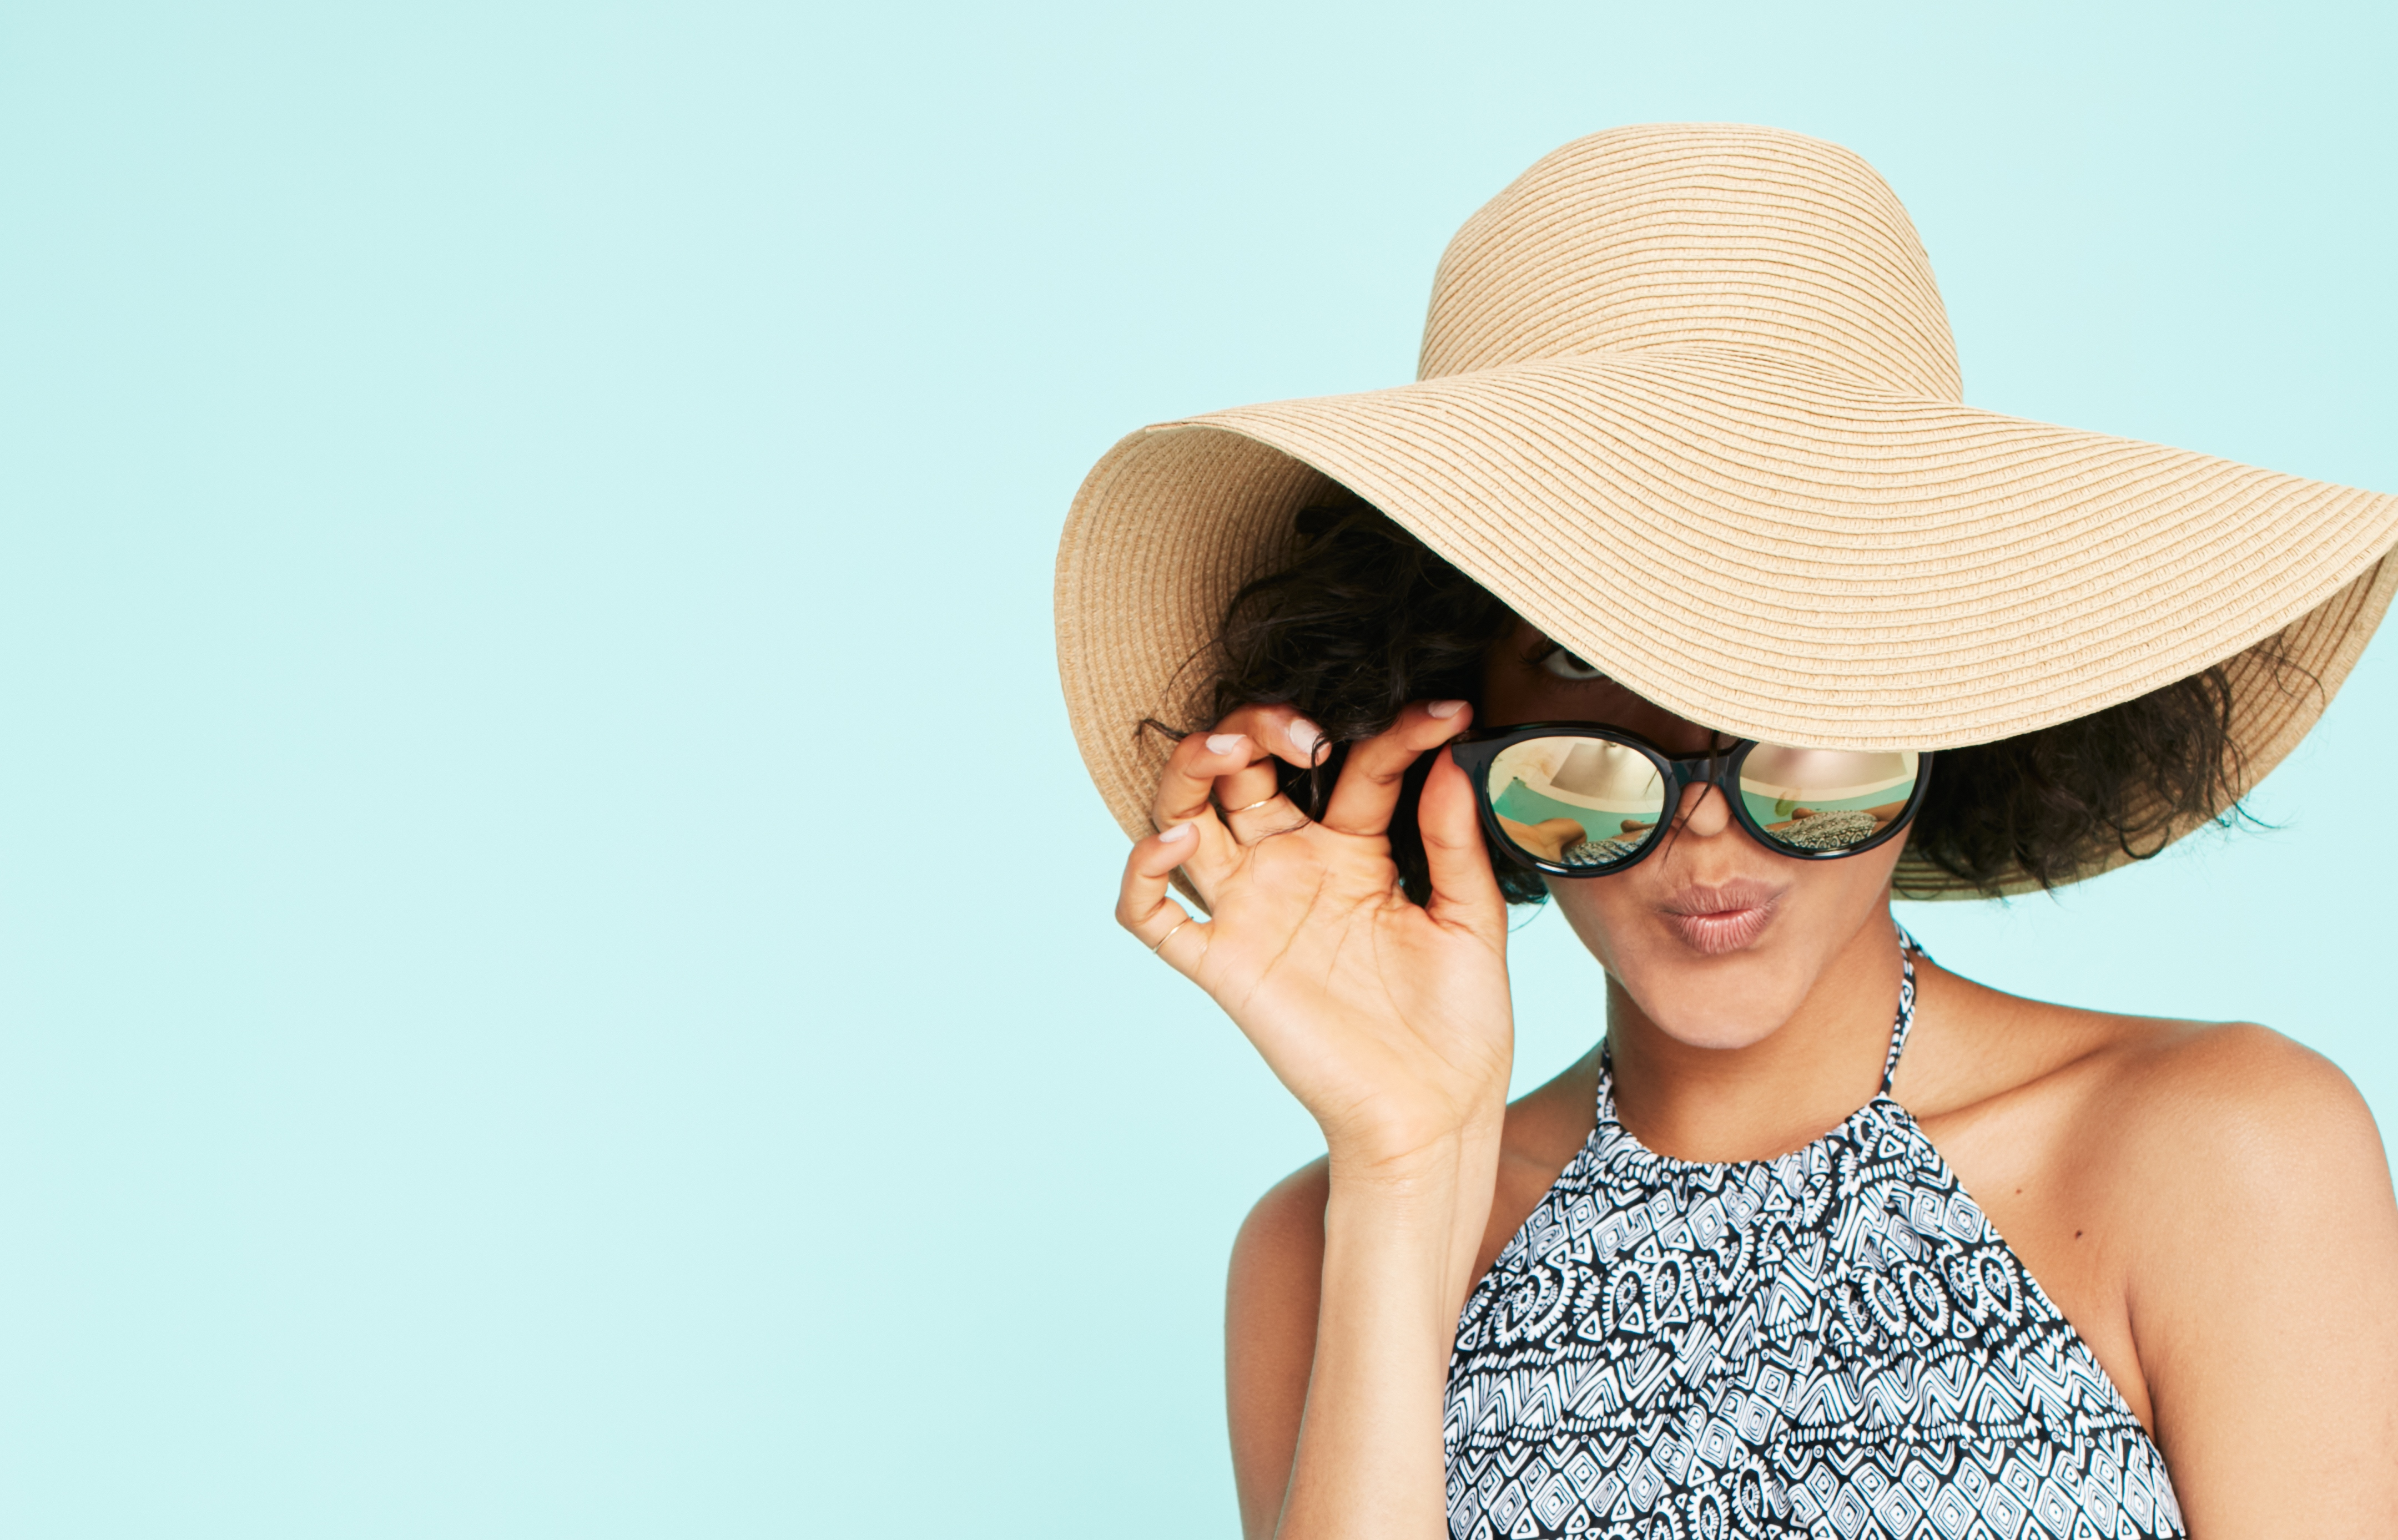 Our checklist includes a sun hat and sunglasses. (Photo courtesy Old Navy)